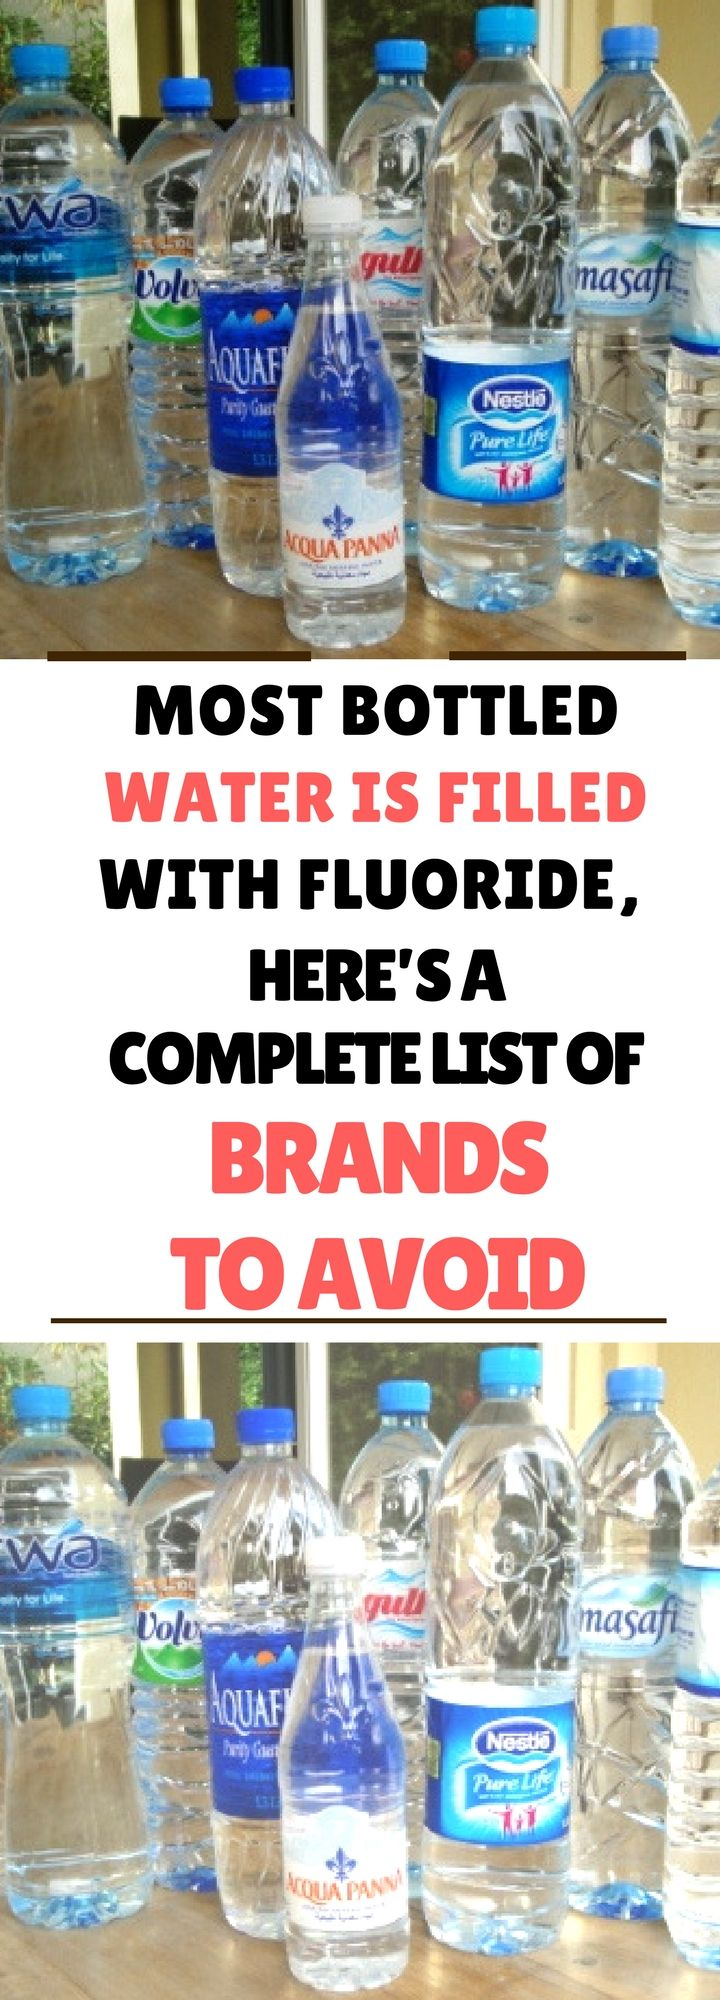 Most Bottled Water is Filled With Fluoride, Here's a Complete List of Brands to Avoidd. Need to know.!!!!! !!!